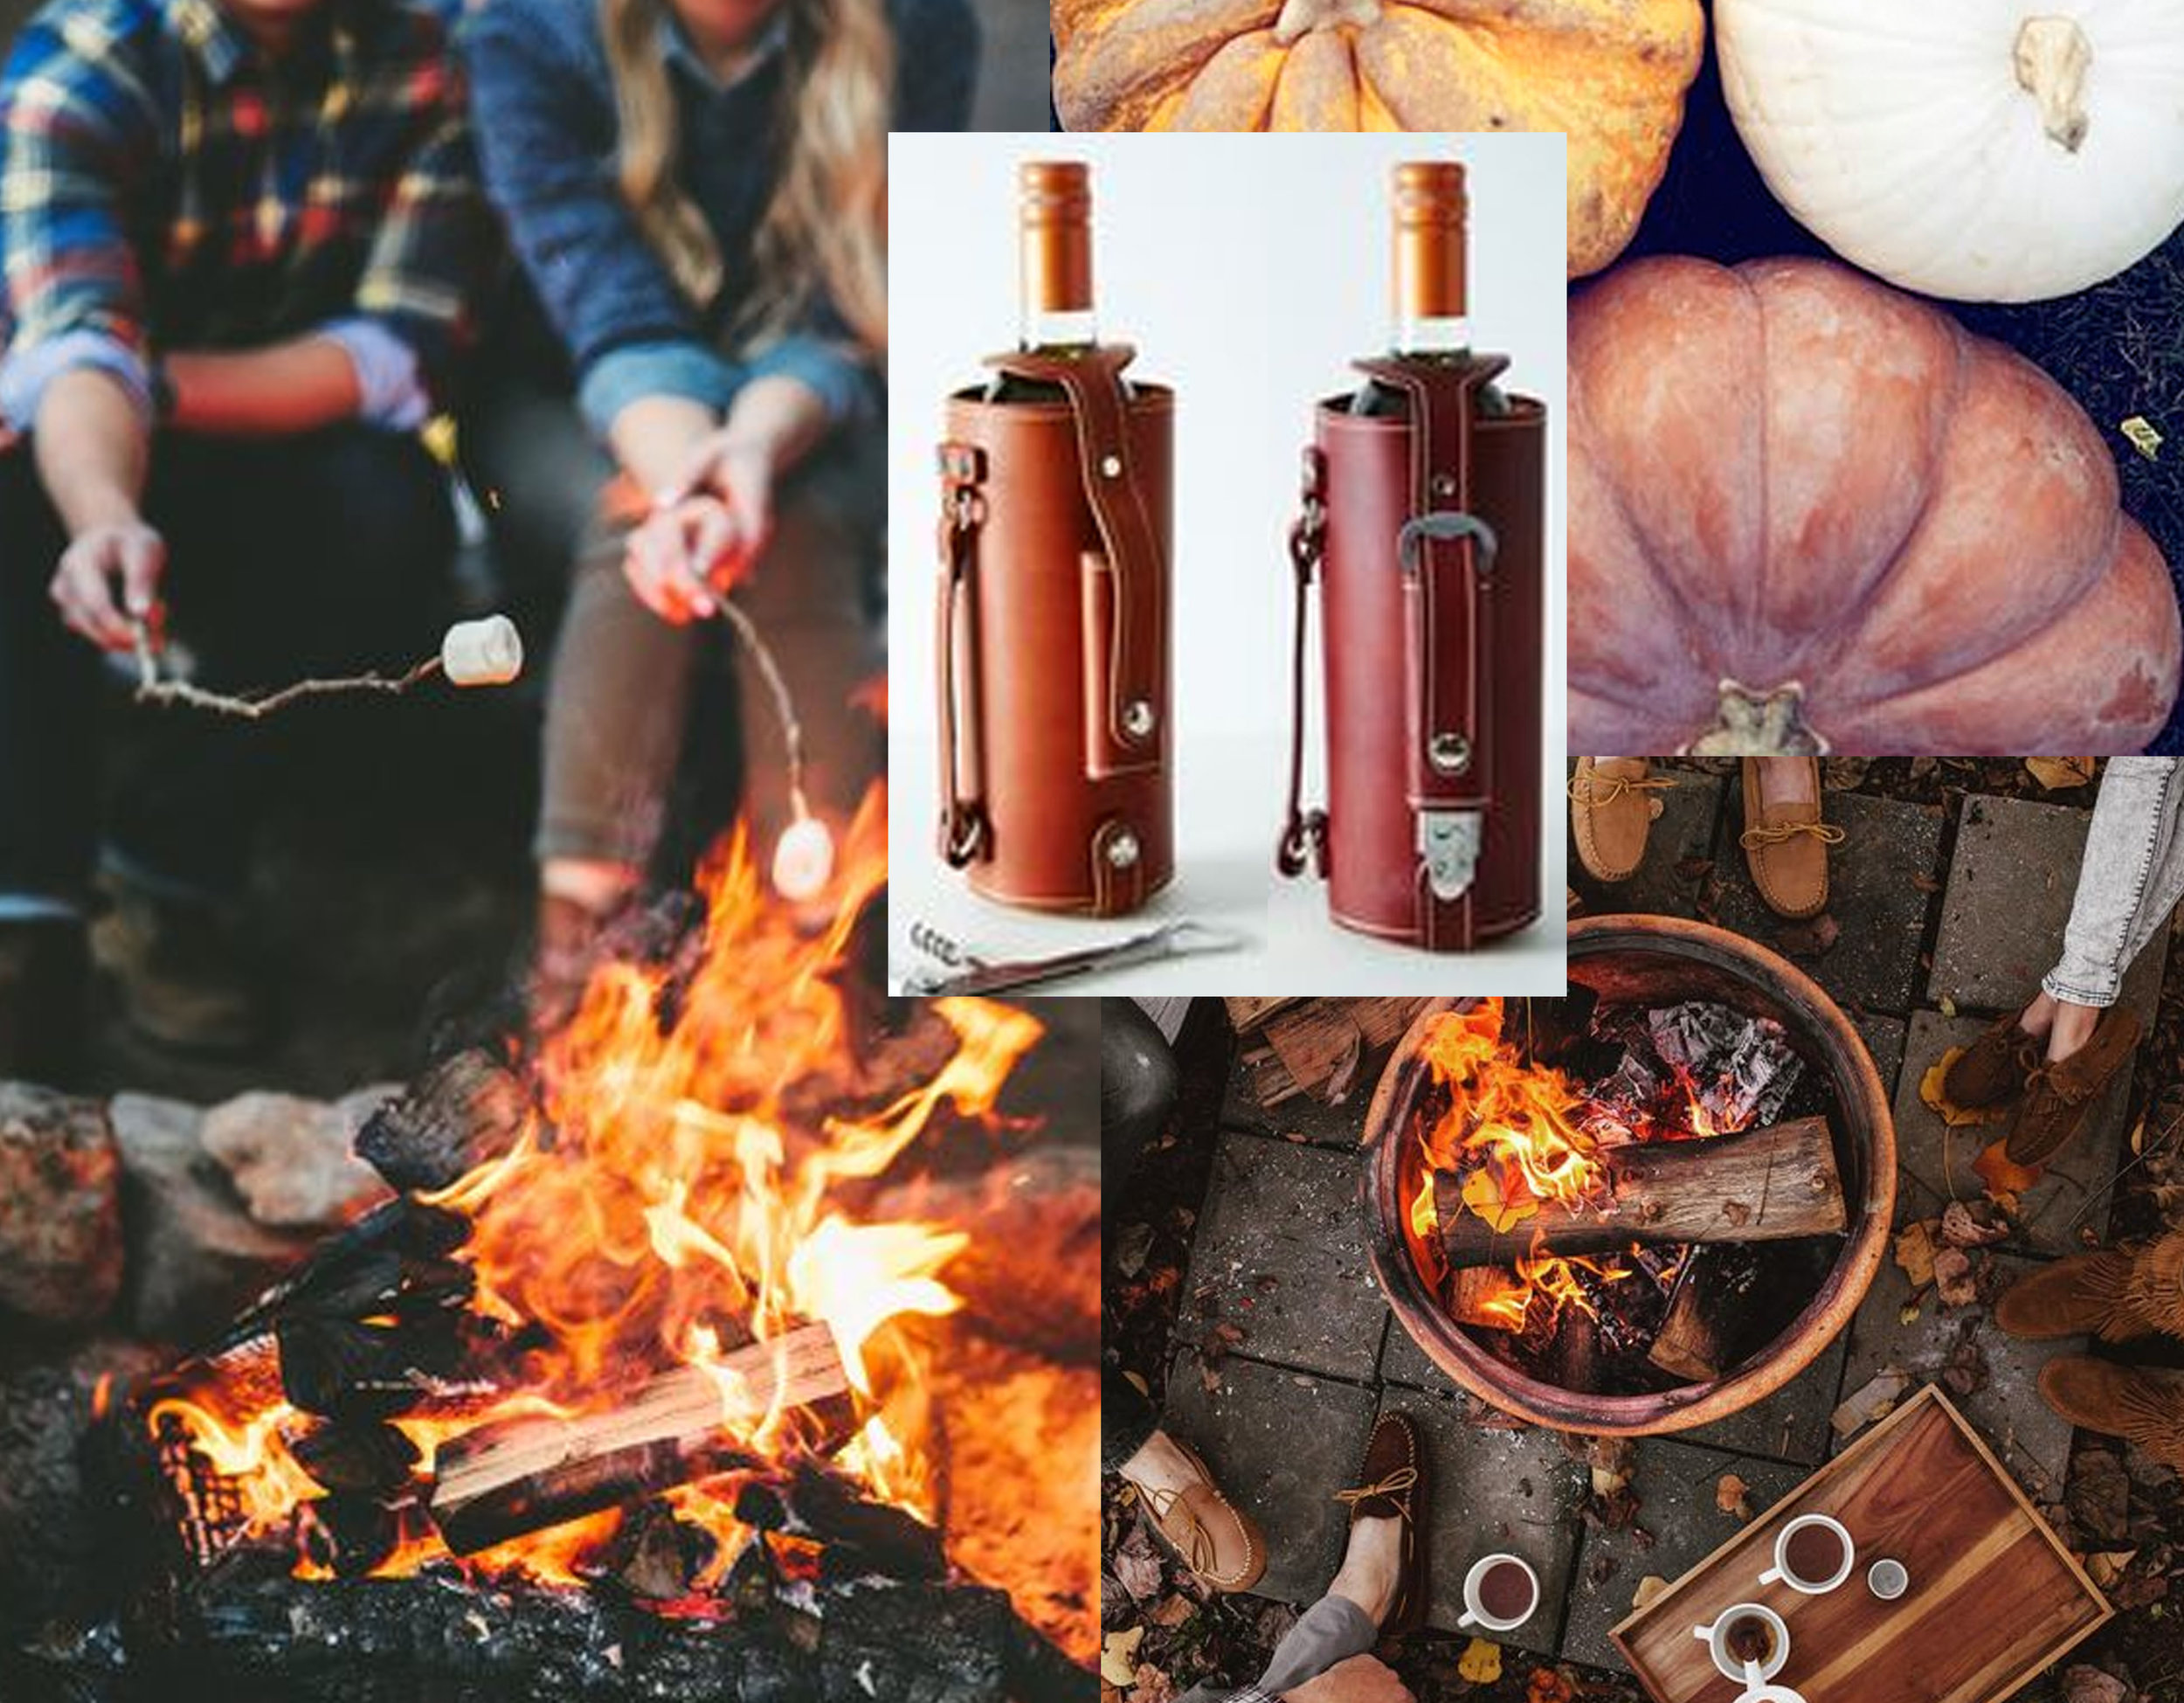 leather-handled wine carrier  Food 52  - image pumpkins via  The Rowdy Stroudy  - hot cocoa round bonfire via  Tifforelle